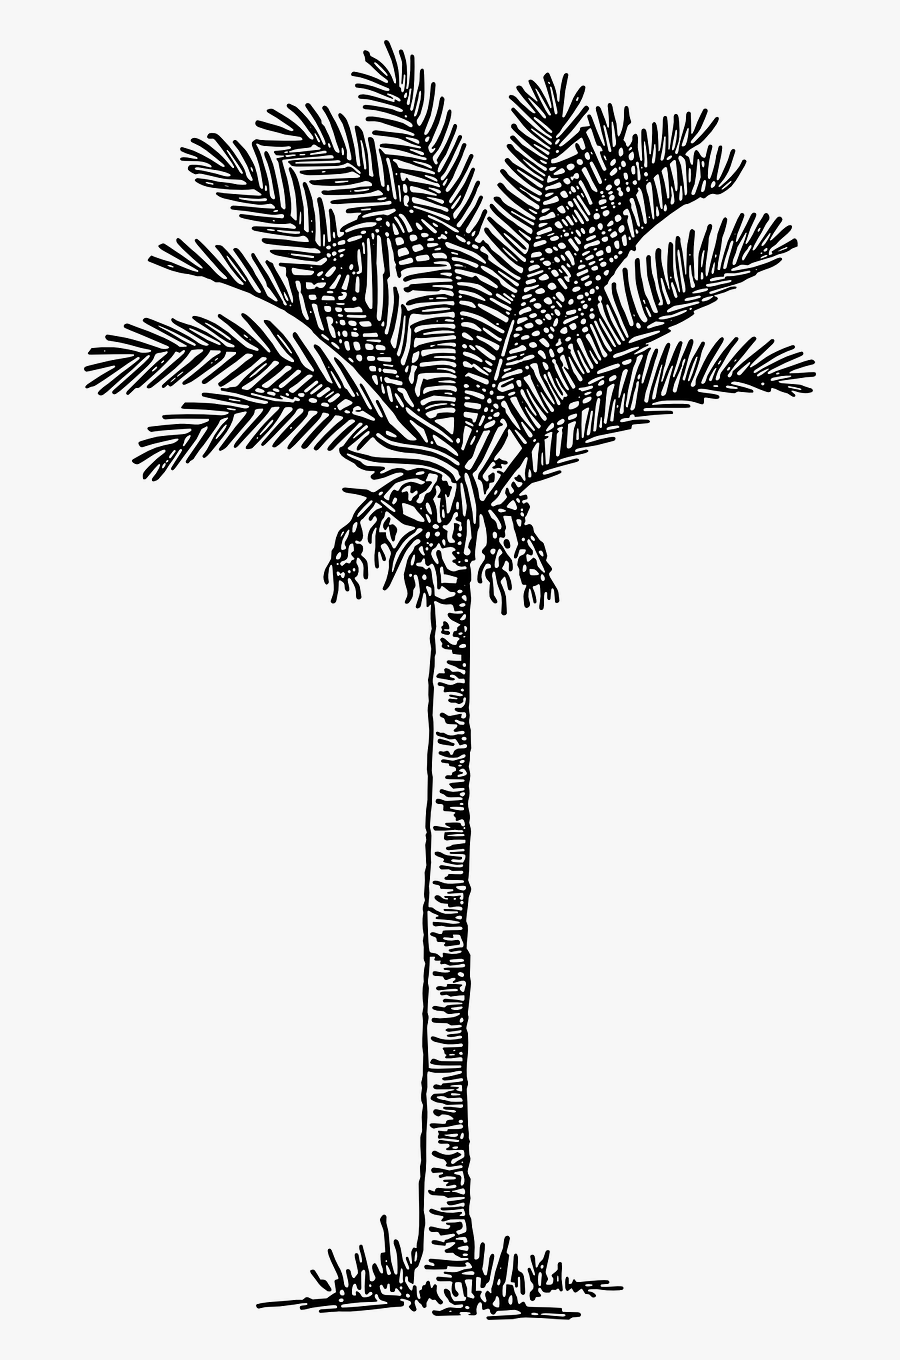 Clip Art Trees Plants Drawing Free - Date Palm Tree Drawing, Transparent Clipart